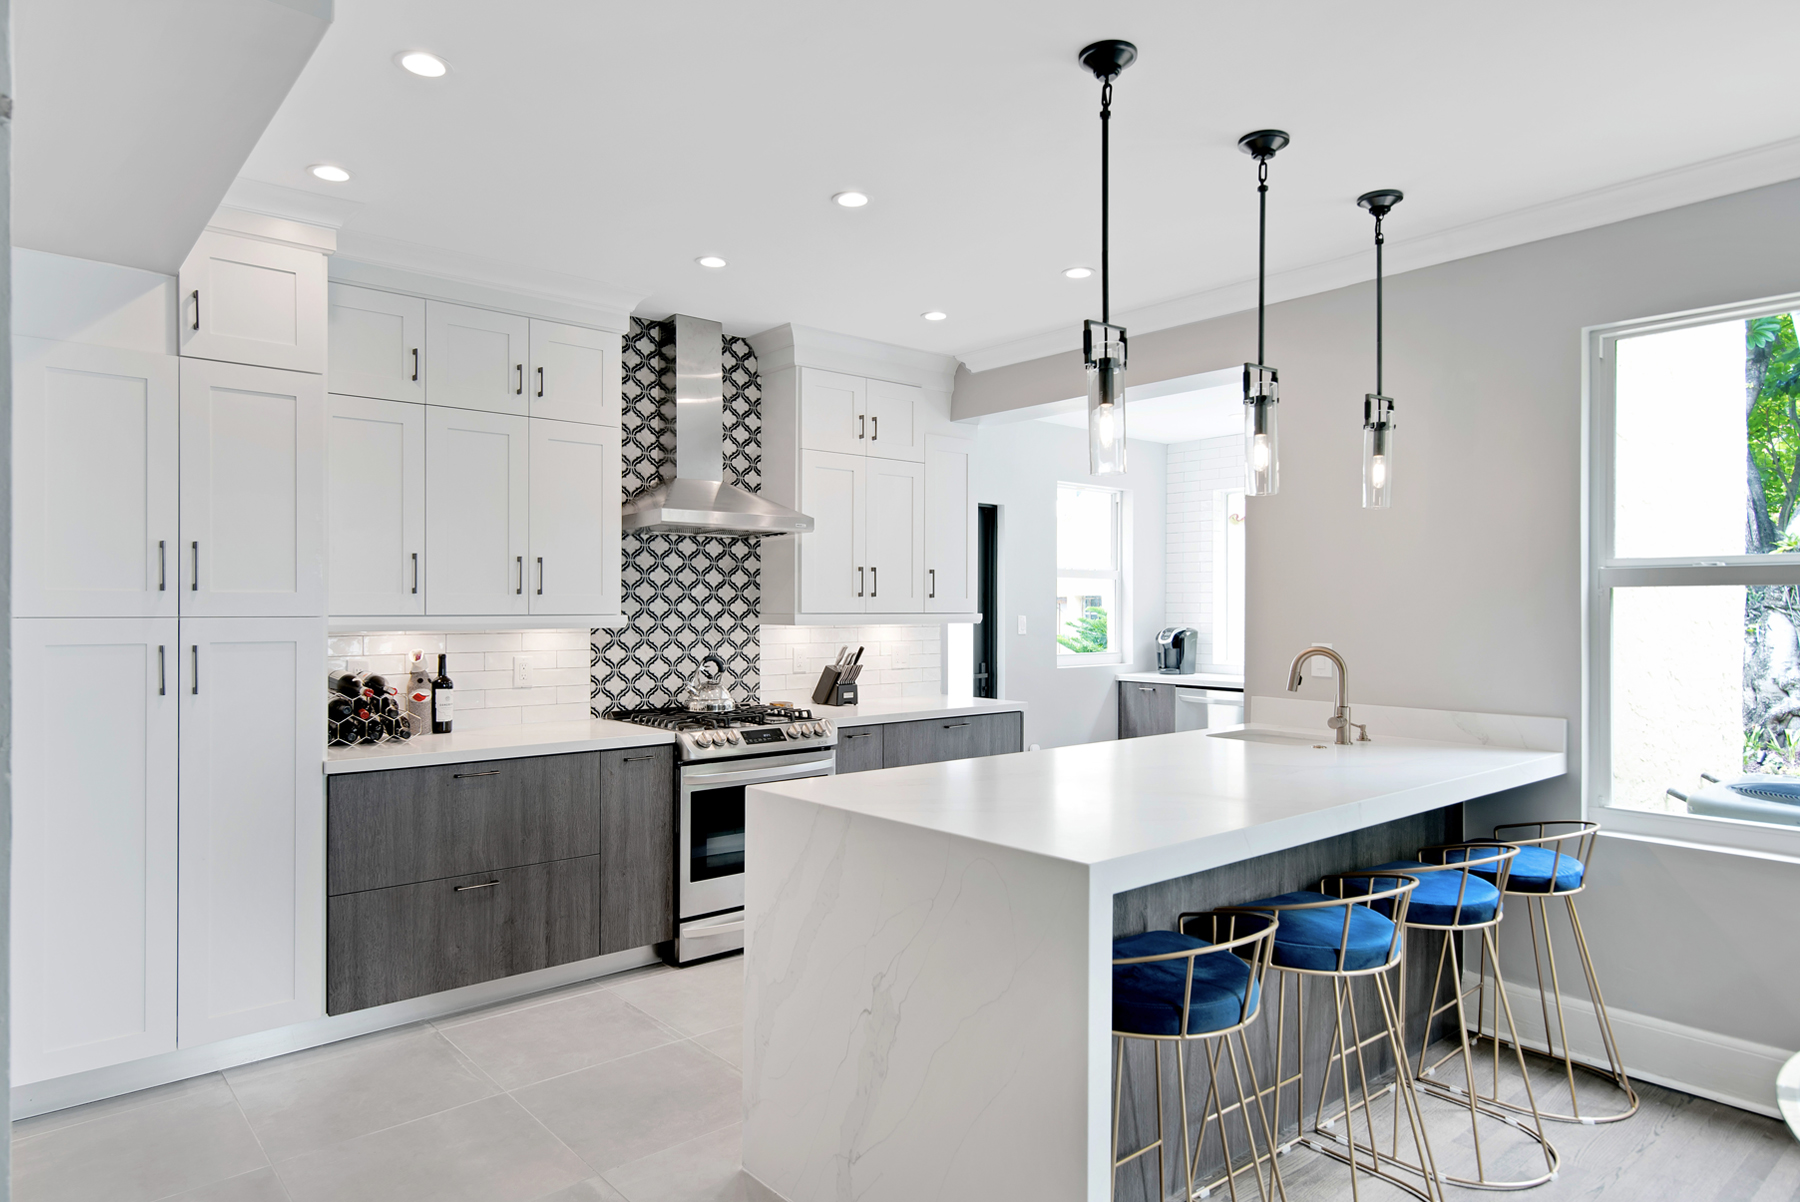 KabCo-Kitchens-arabesco-miami-kitchen-remodel-featured